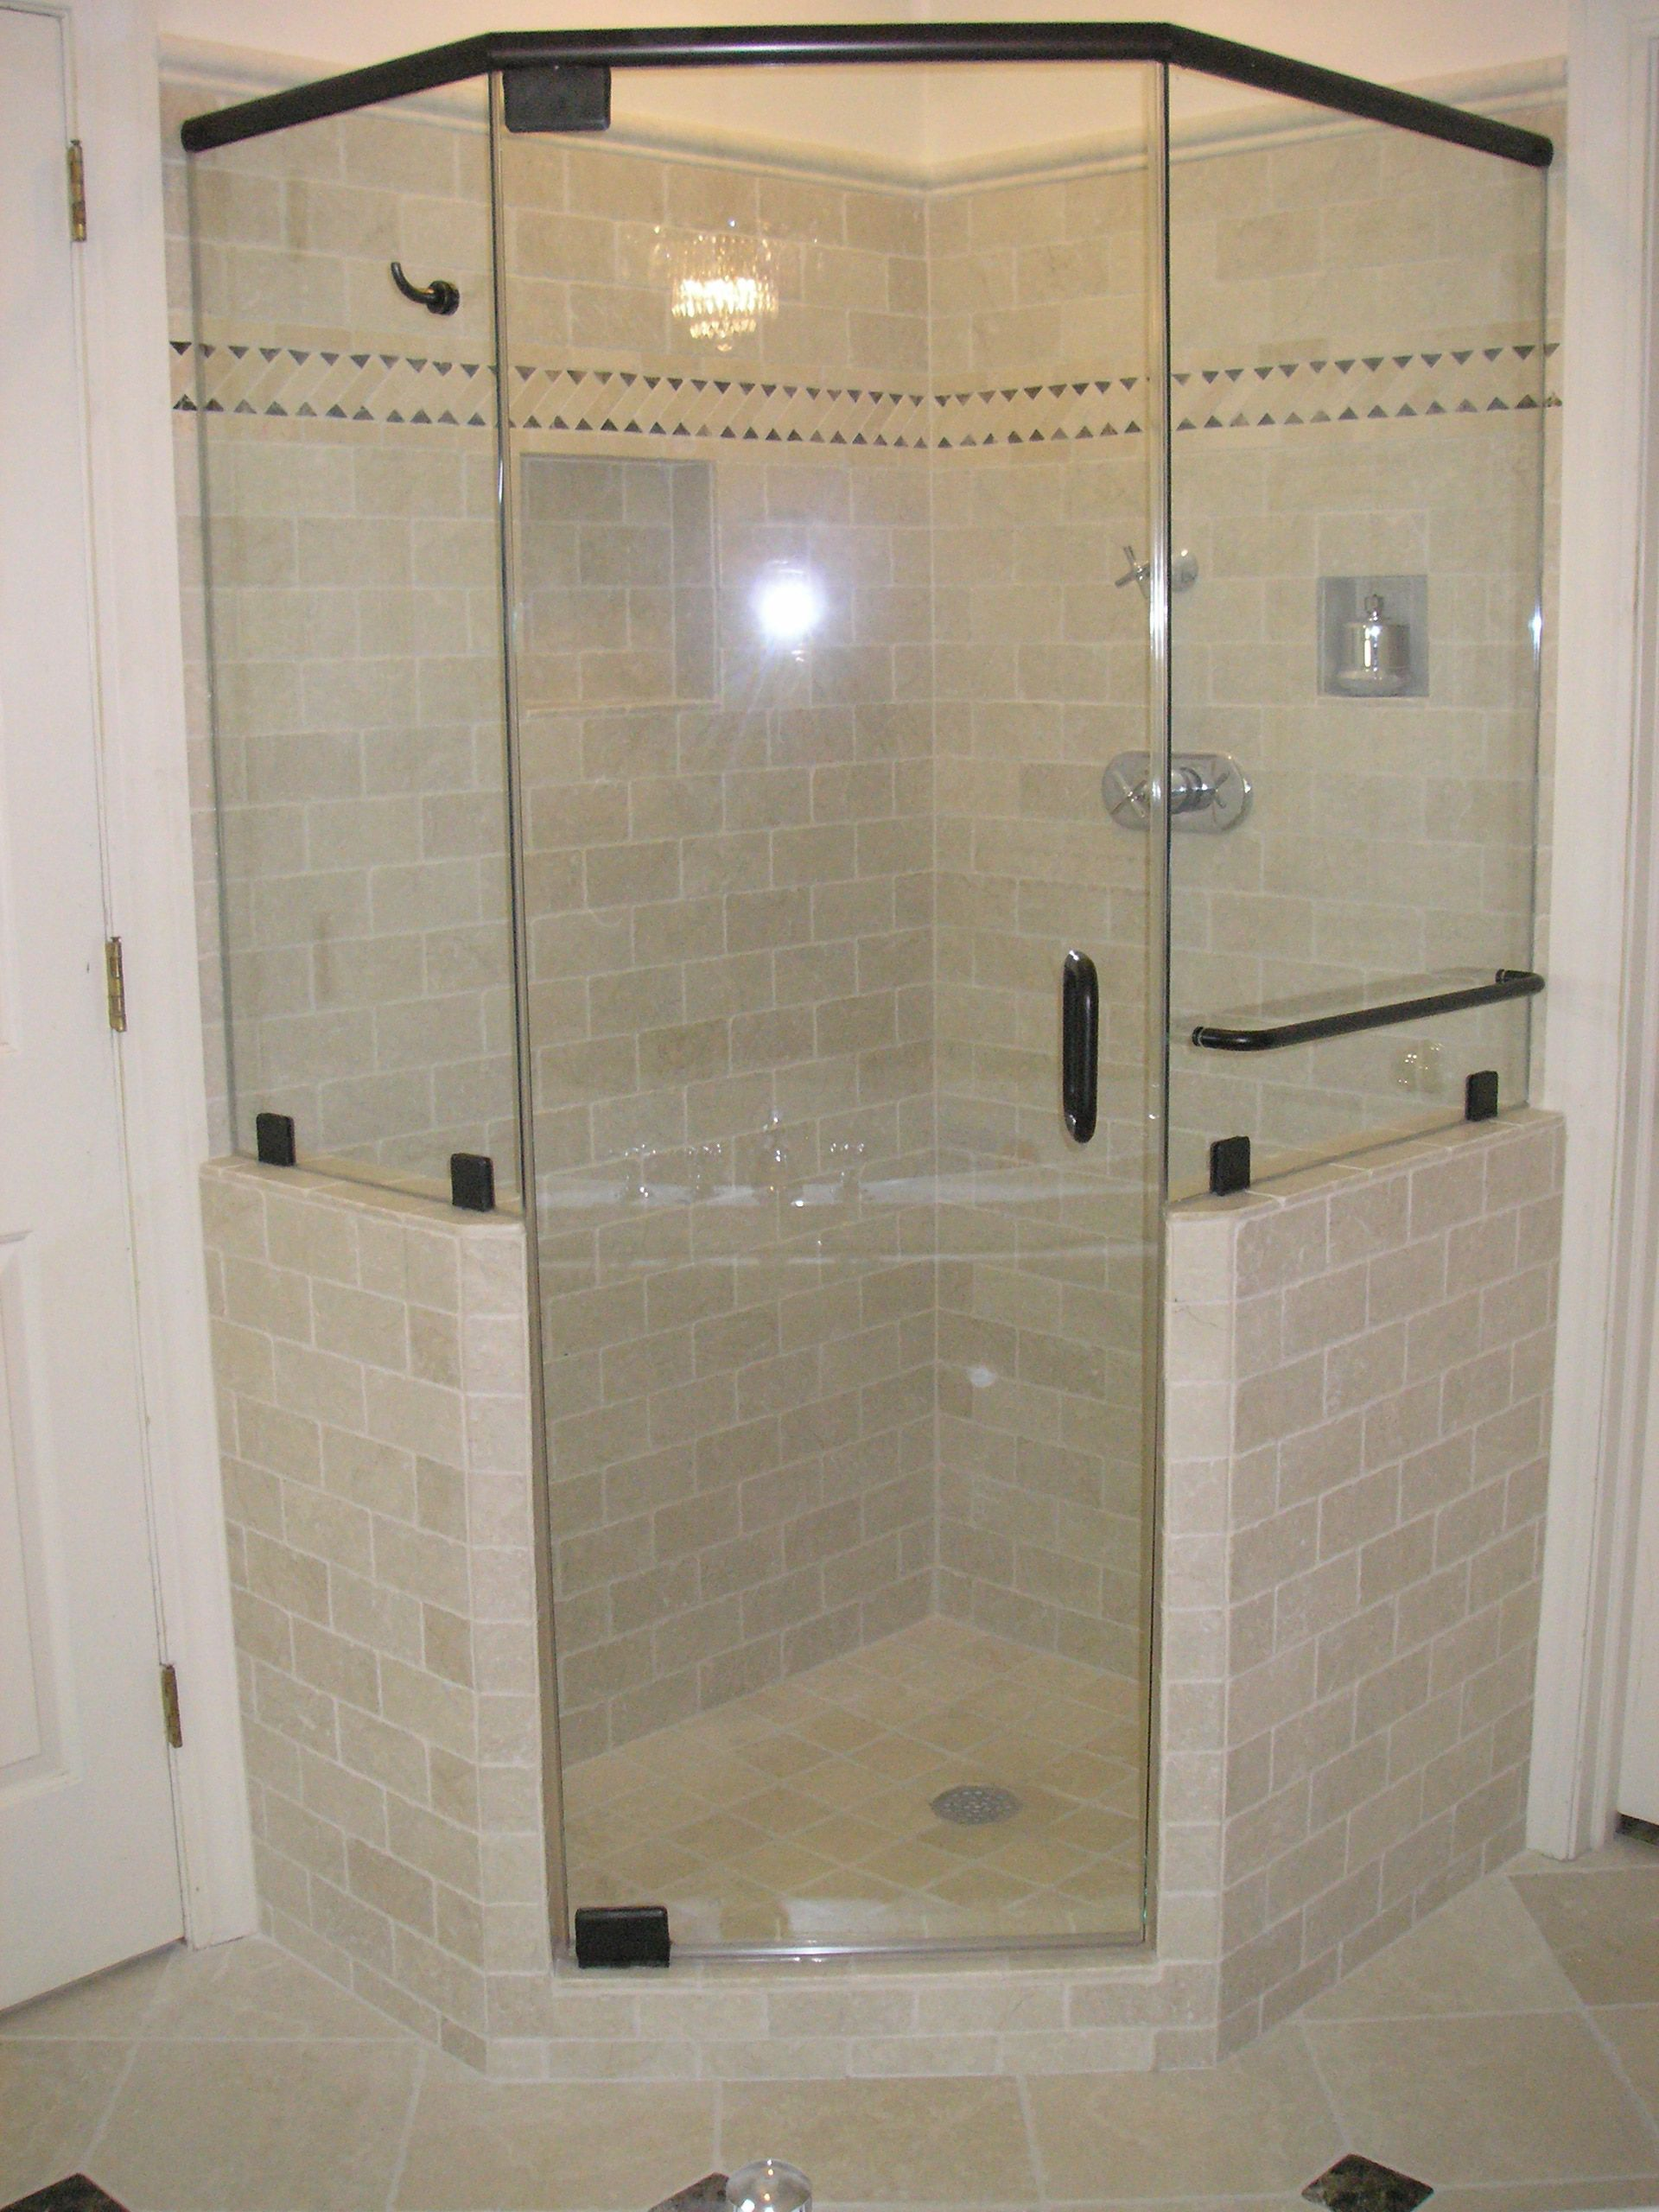 Frameless quadrant shower enclosure have more elegant look than ...